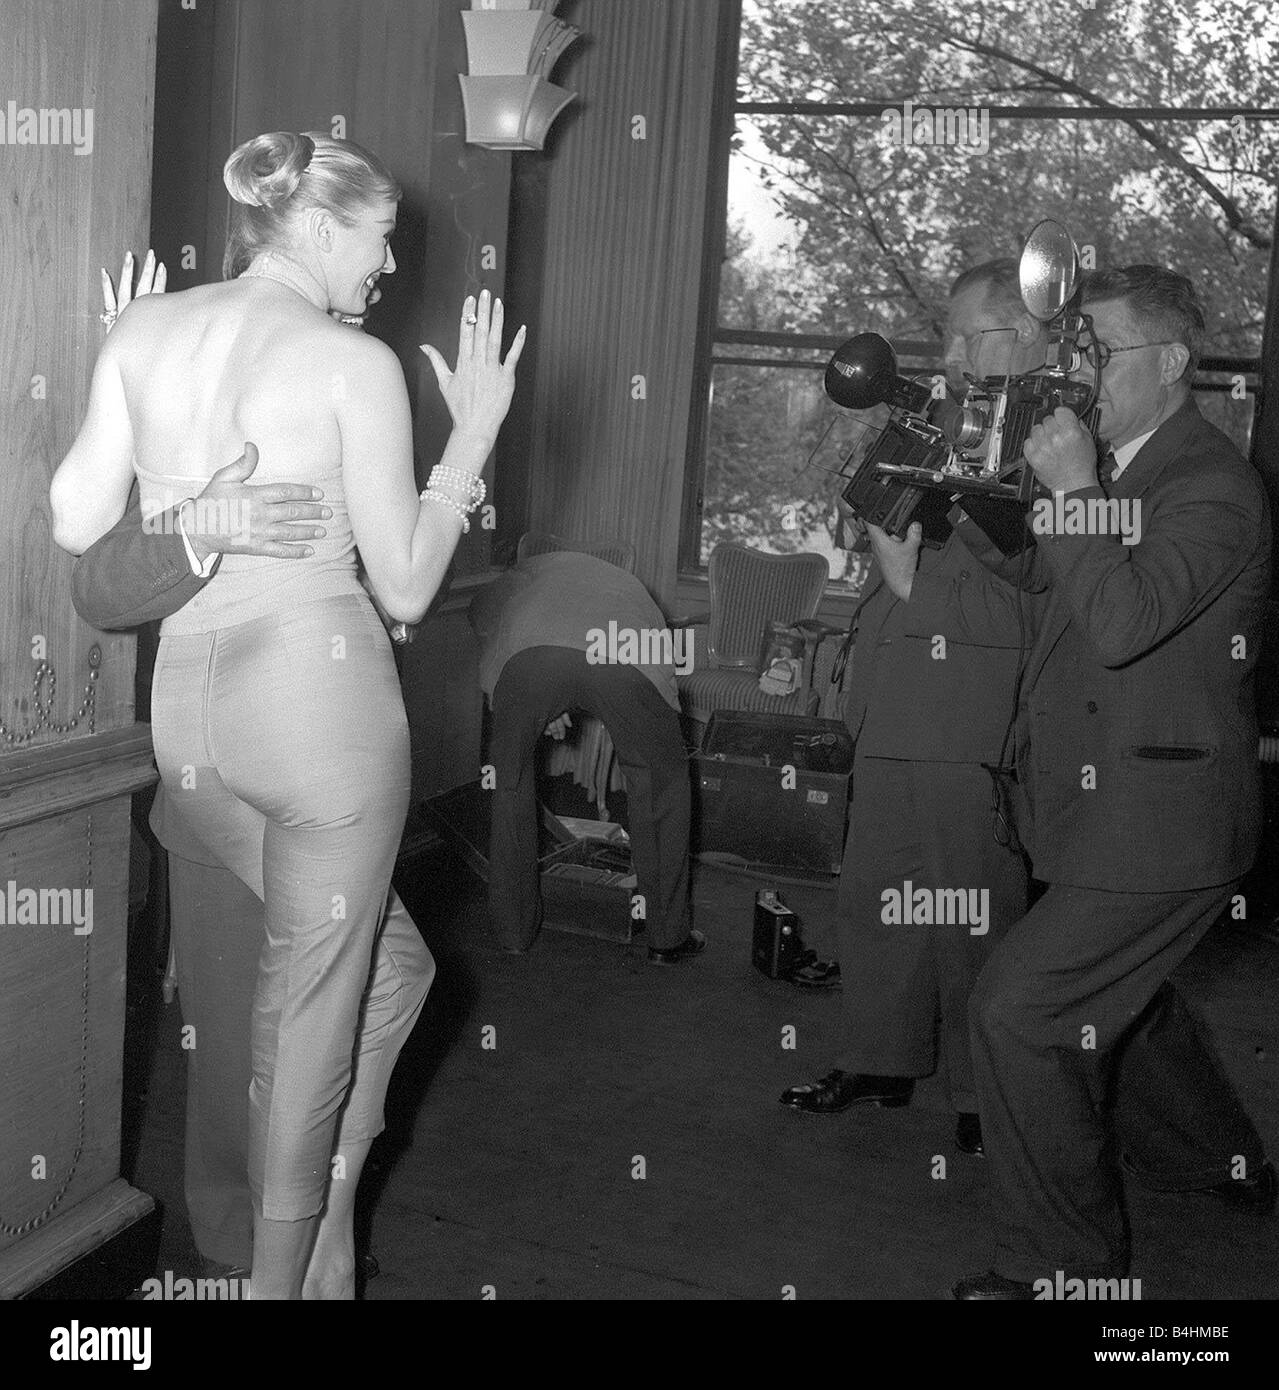 Comedian and actor Norman Wisdom poses for photographers with actress Anita Ekberg at the Savoy Hotel May 1956 - Stock Image